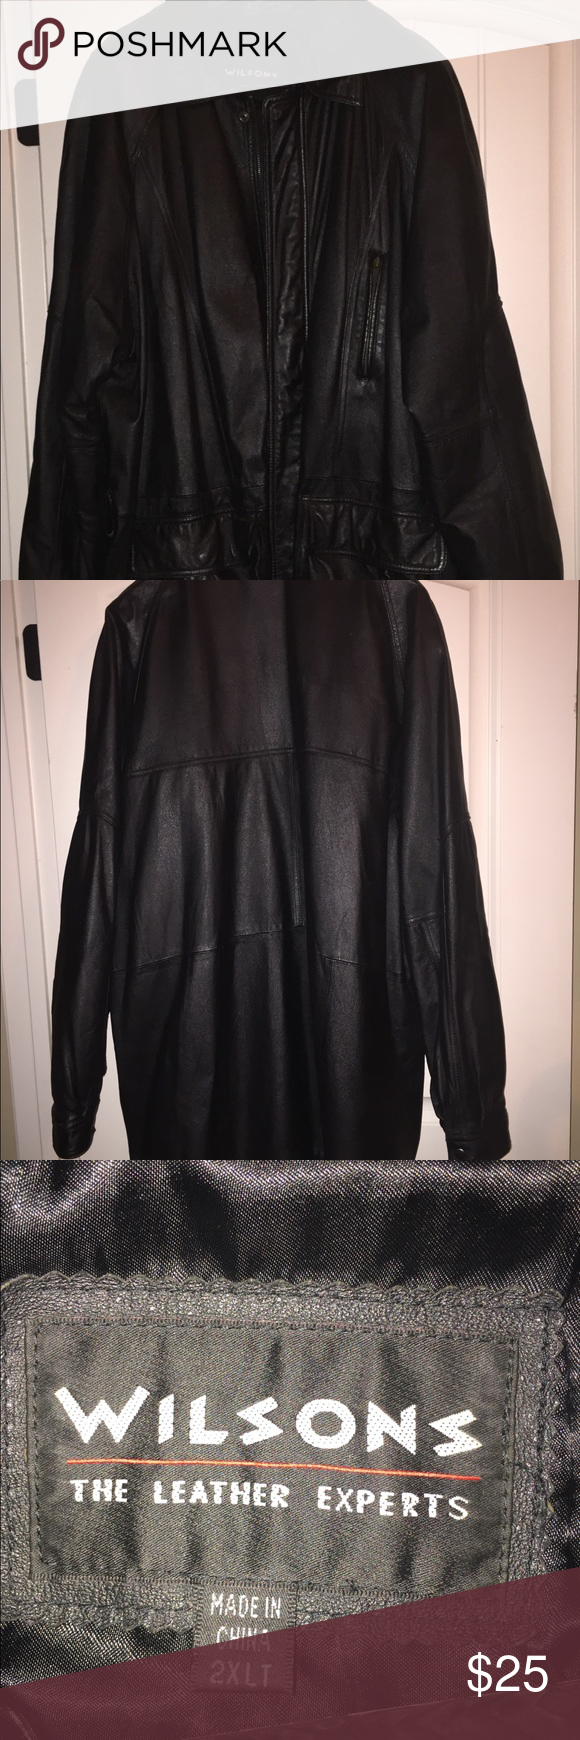 Wilson Leather Jacket 2XLT Wilsons leather jacket